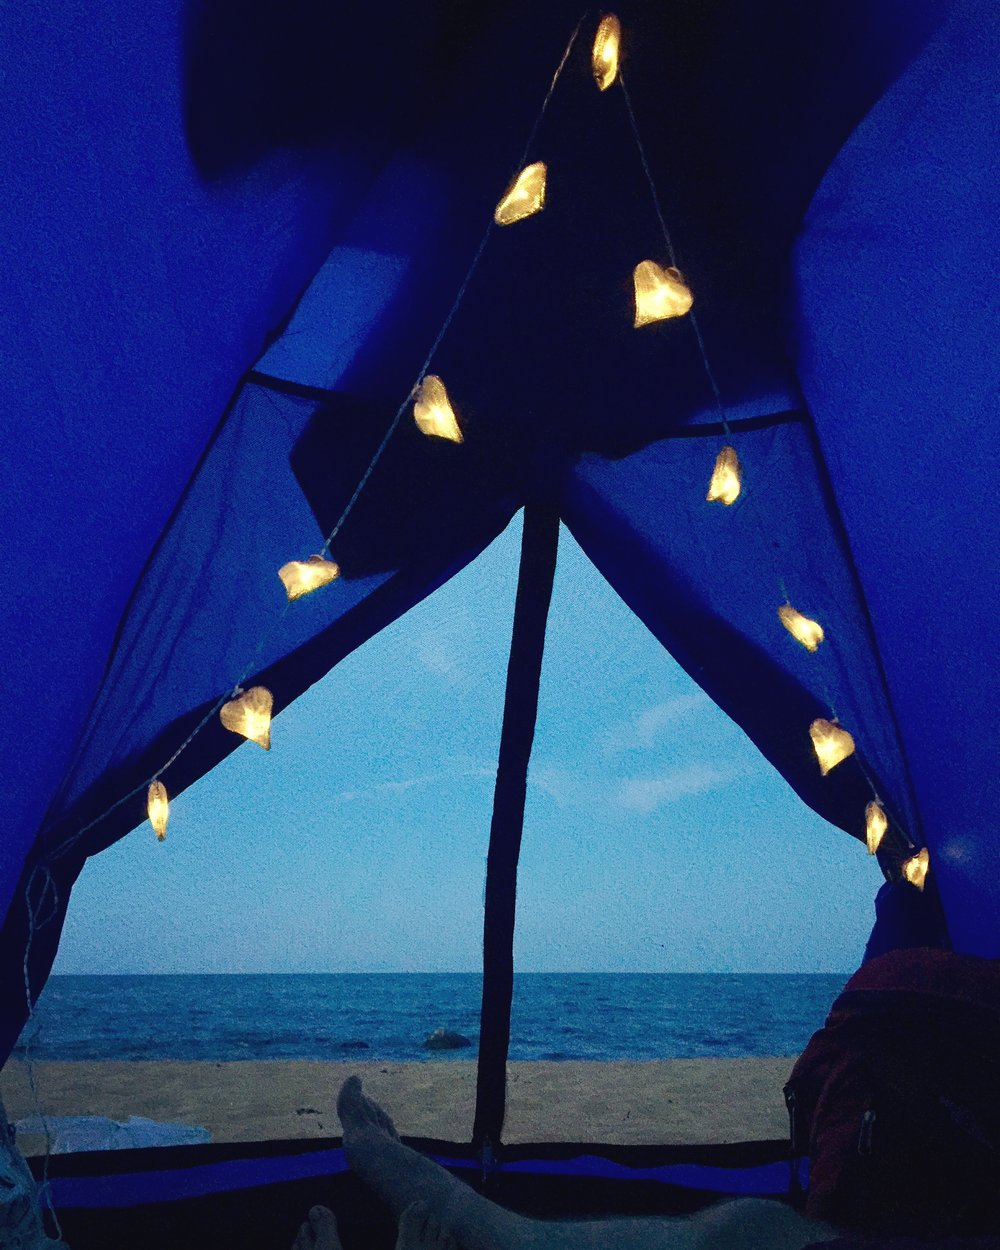 View from our tent from the inside. Take me back to that night and that sky please.